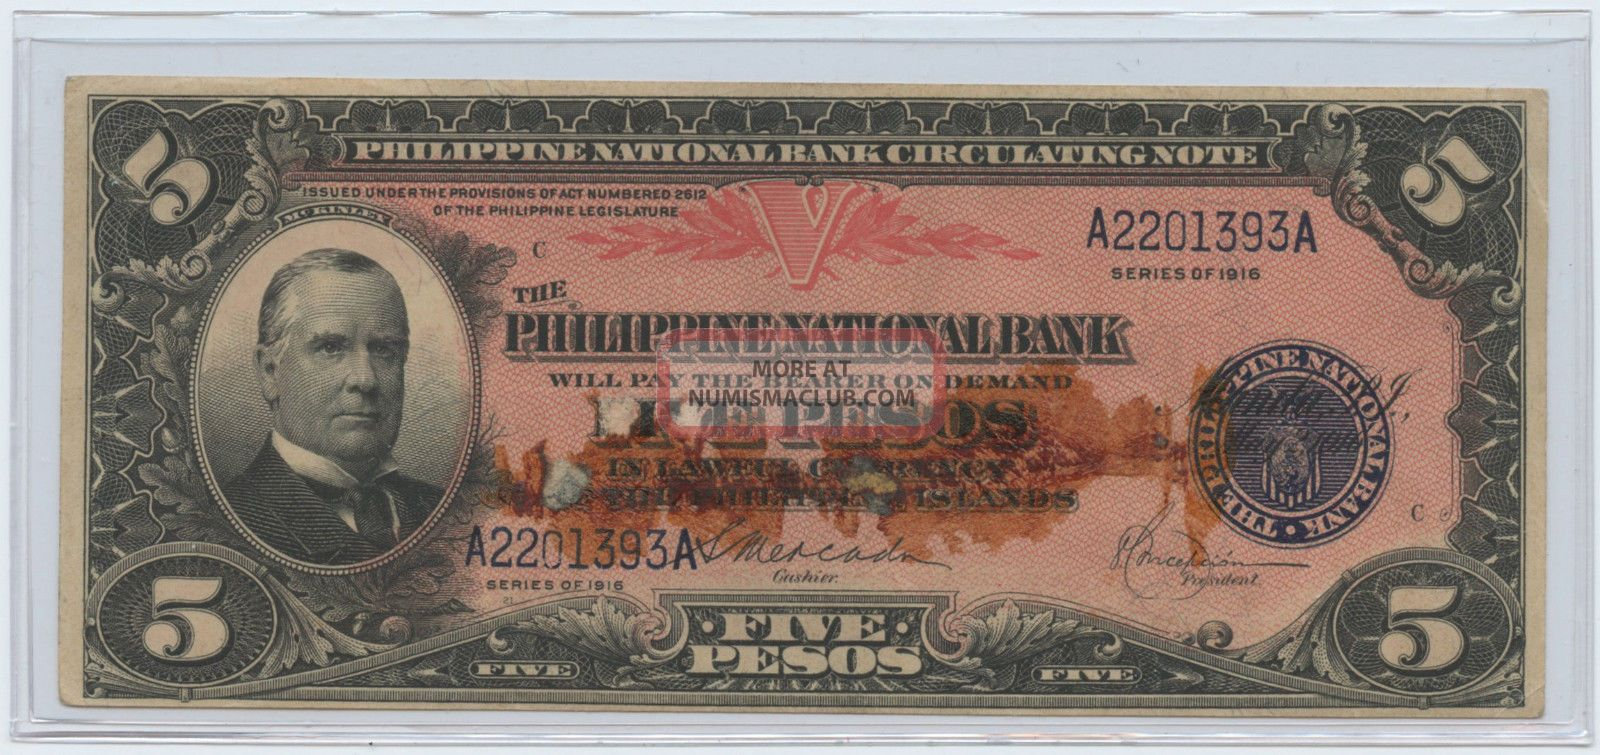 1916 Philippine National Bank 5 Pesos Circulating Note Serial A2201393a Asia photo